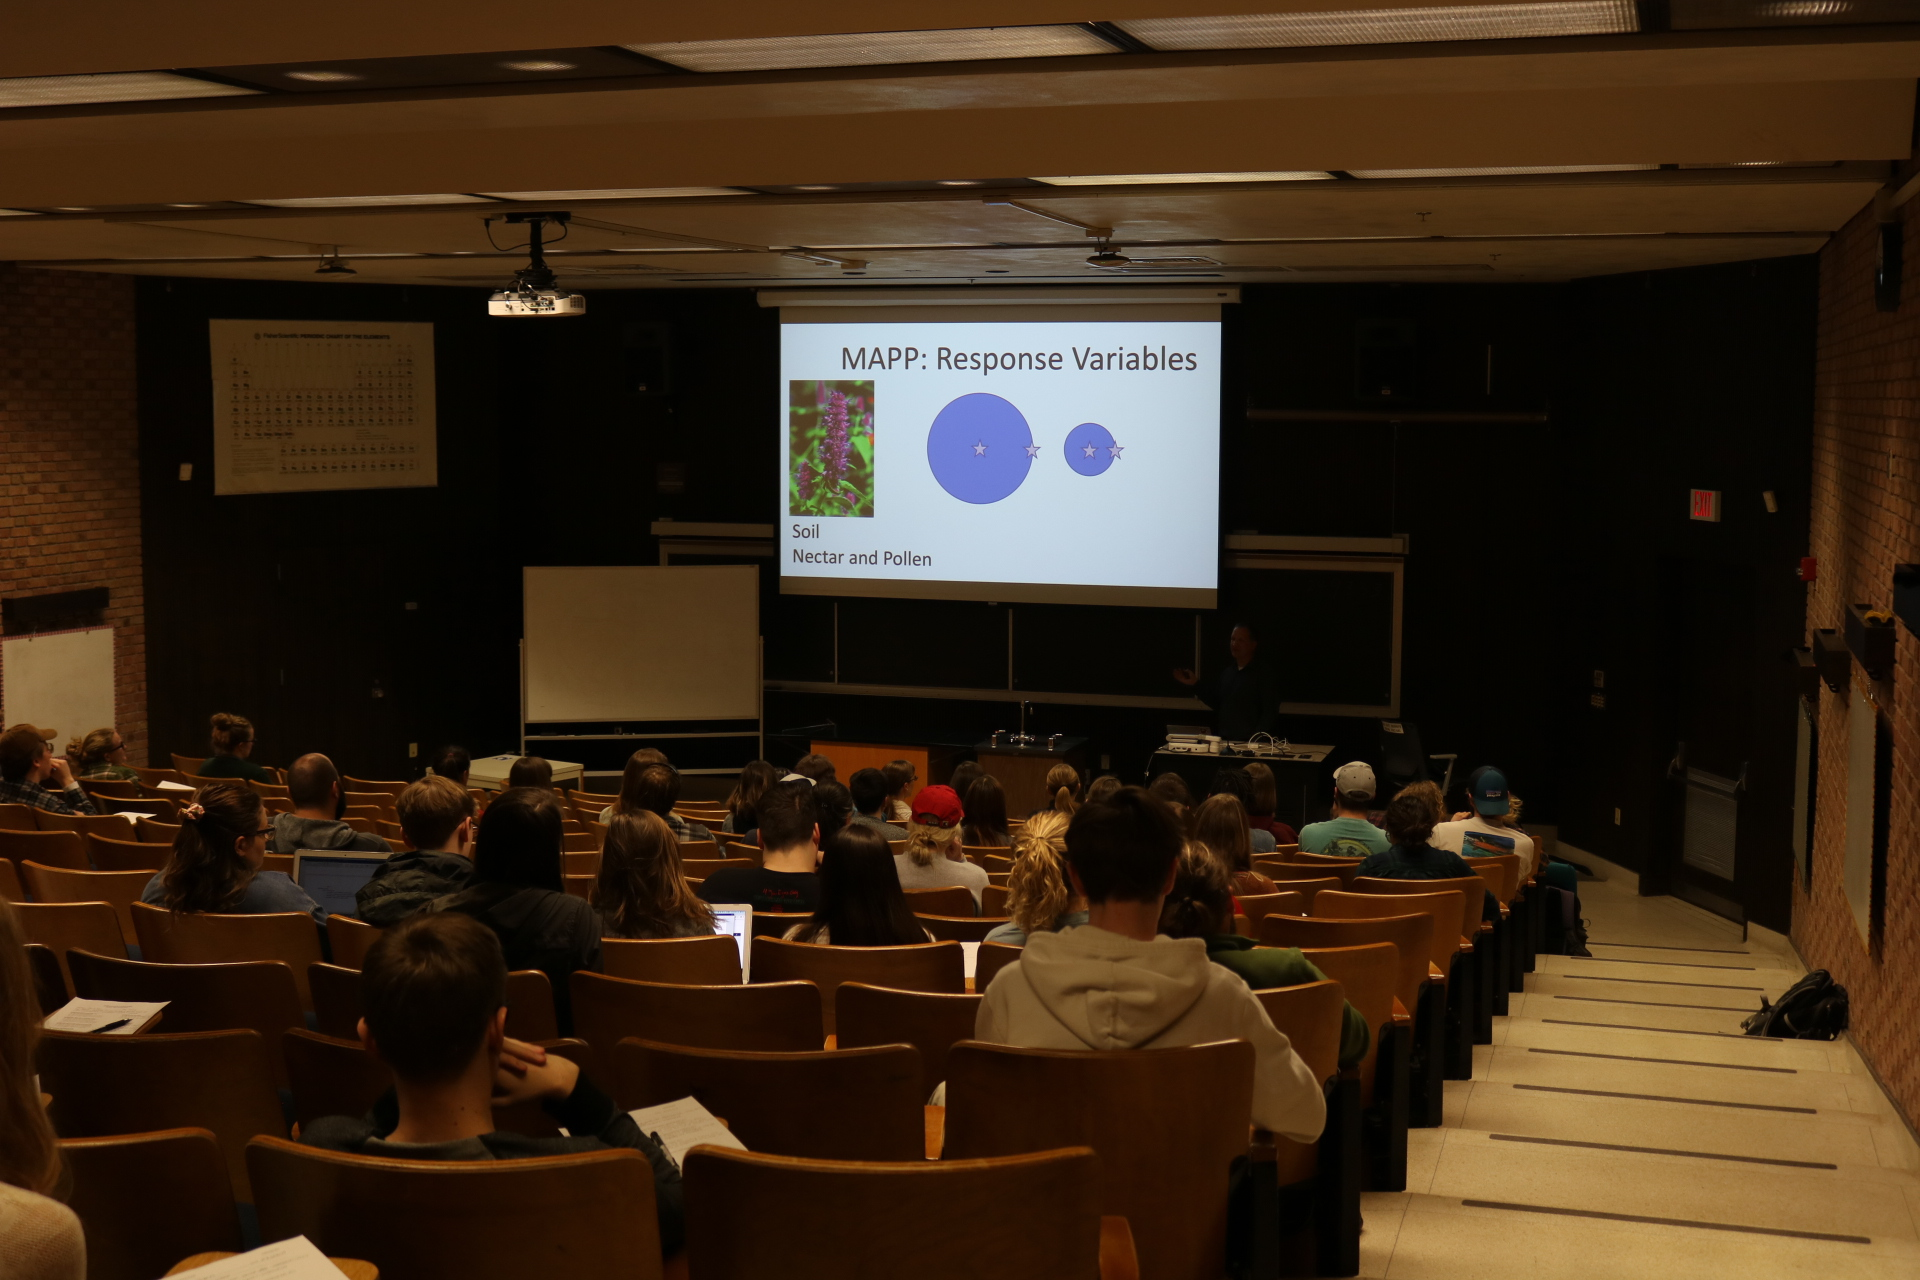 The seminar was held in Life Science 185. Photo by Madison Hunter.